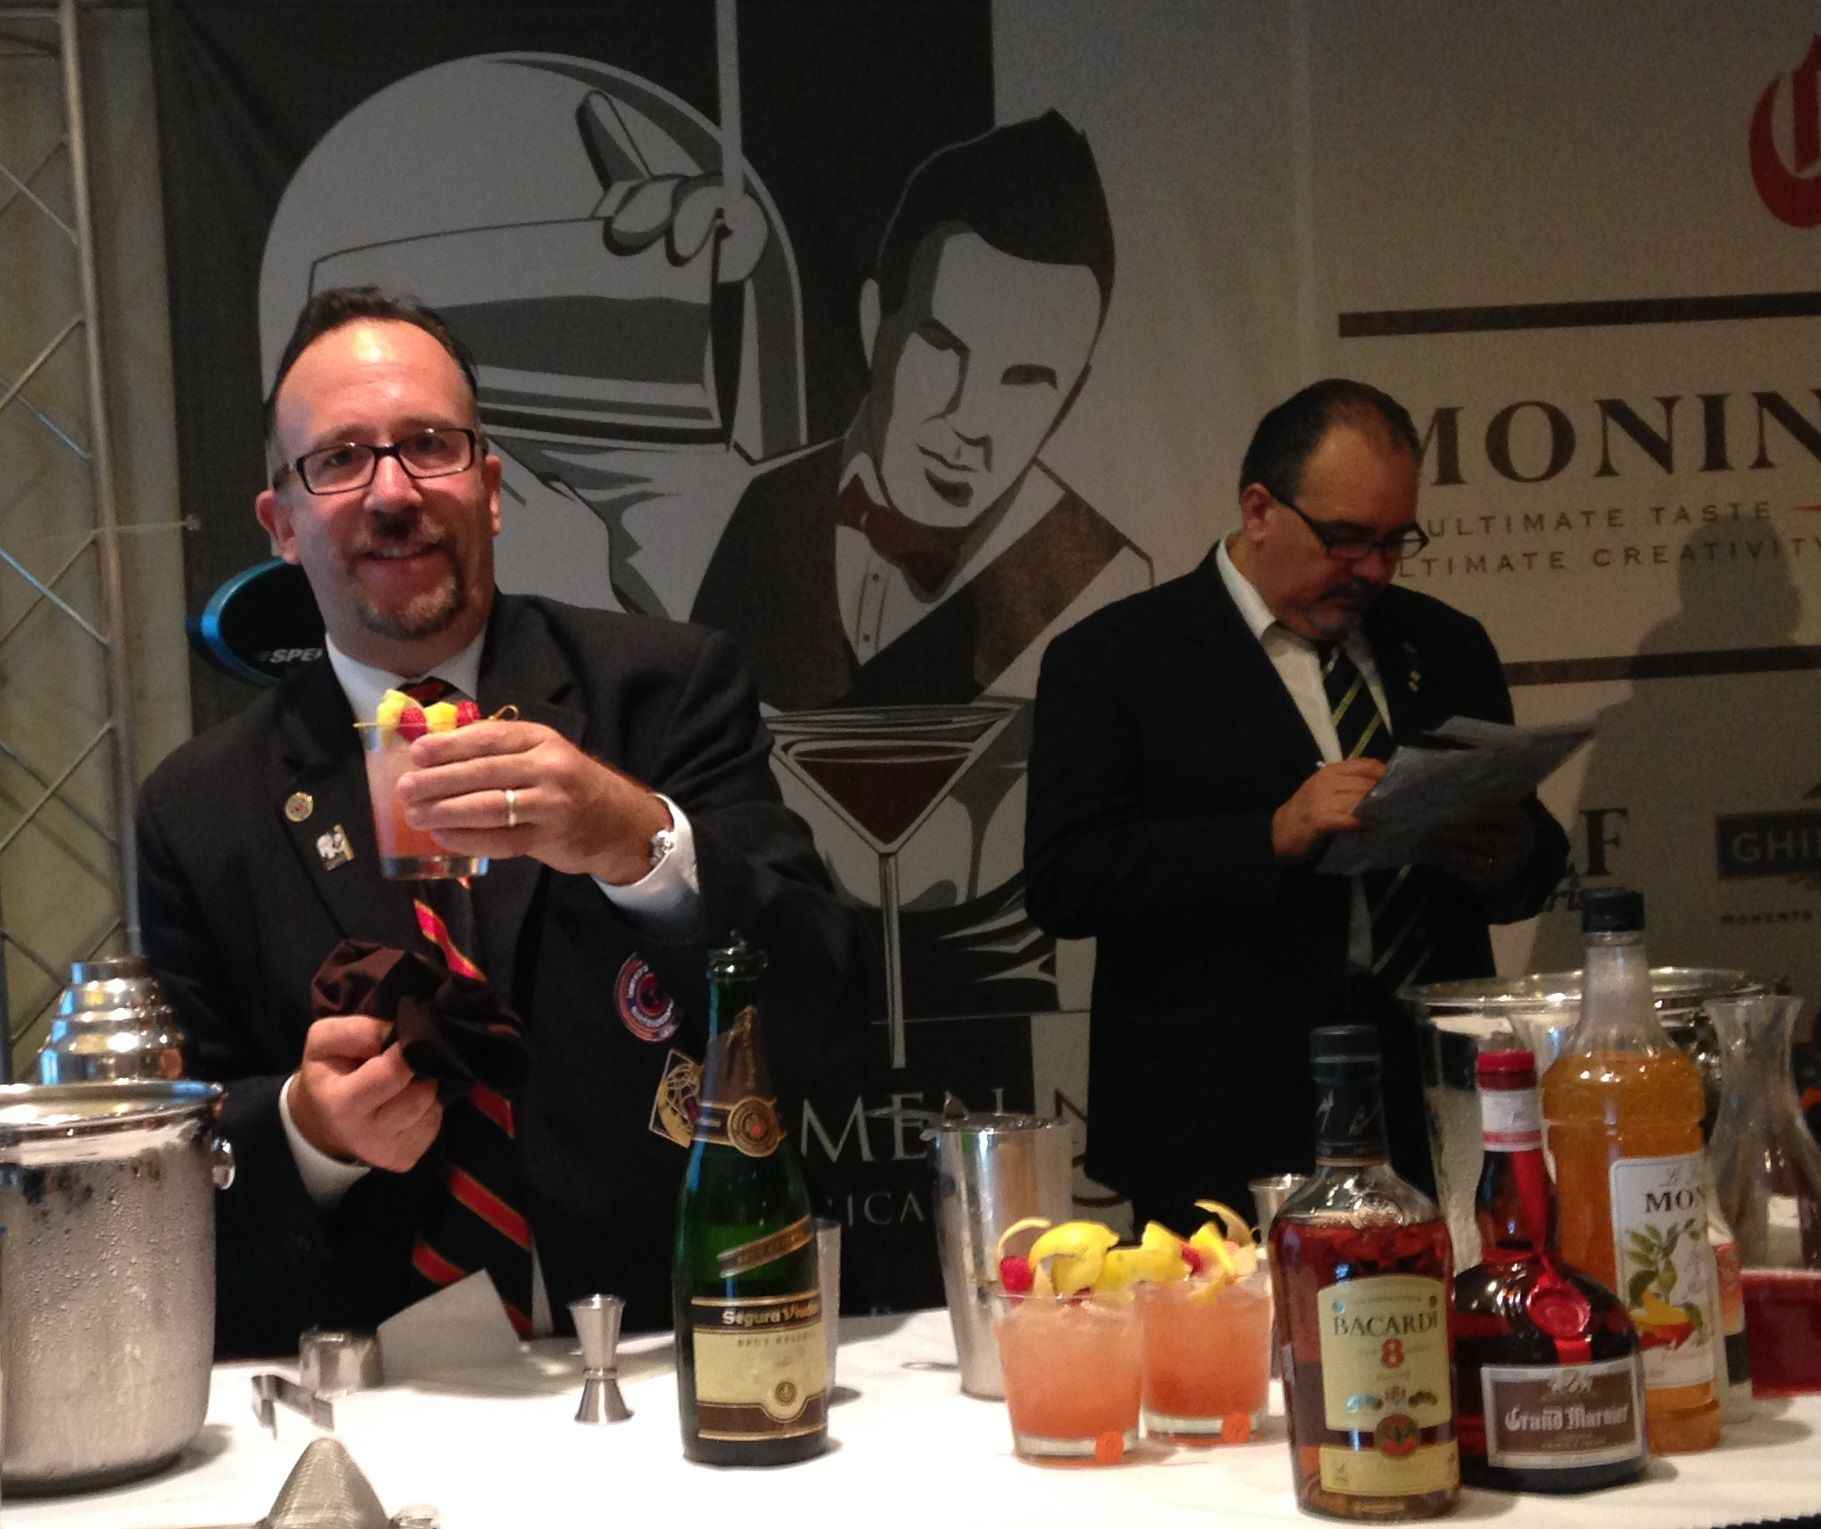 Frank Martucci (on left) at the 17th Annual IBA Pan American Cocktail Competition & Educational Show San Juan, Puerto Rico in 2013.